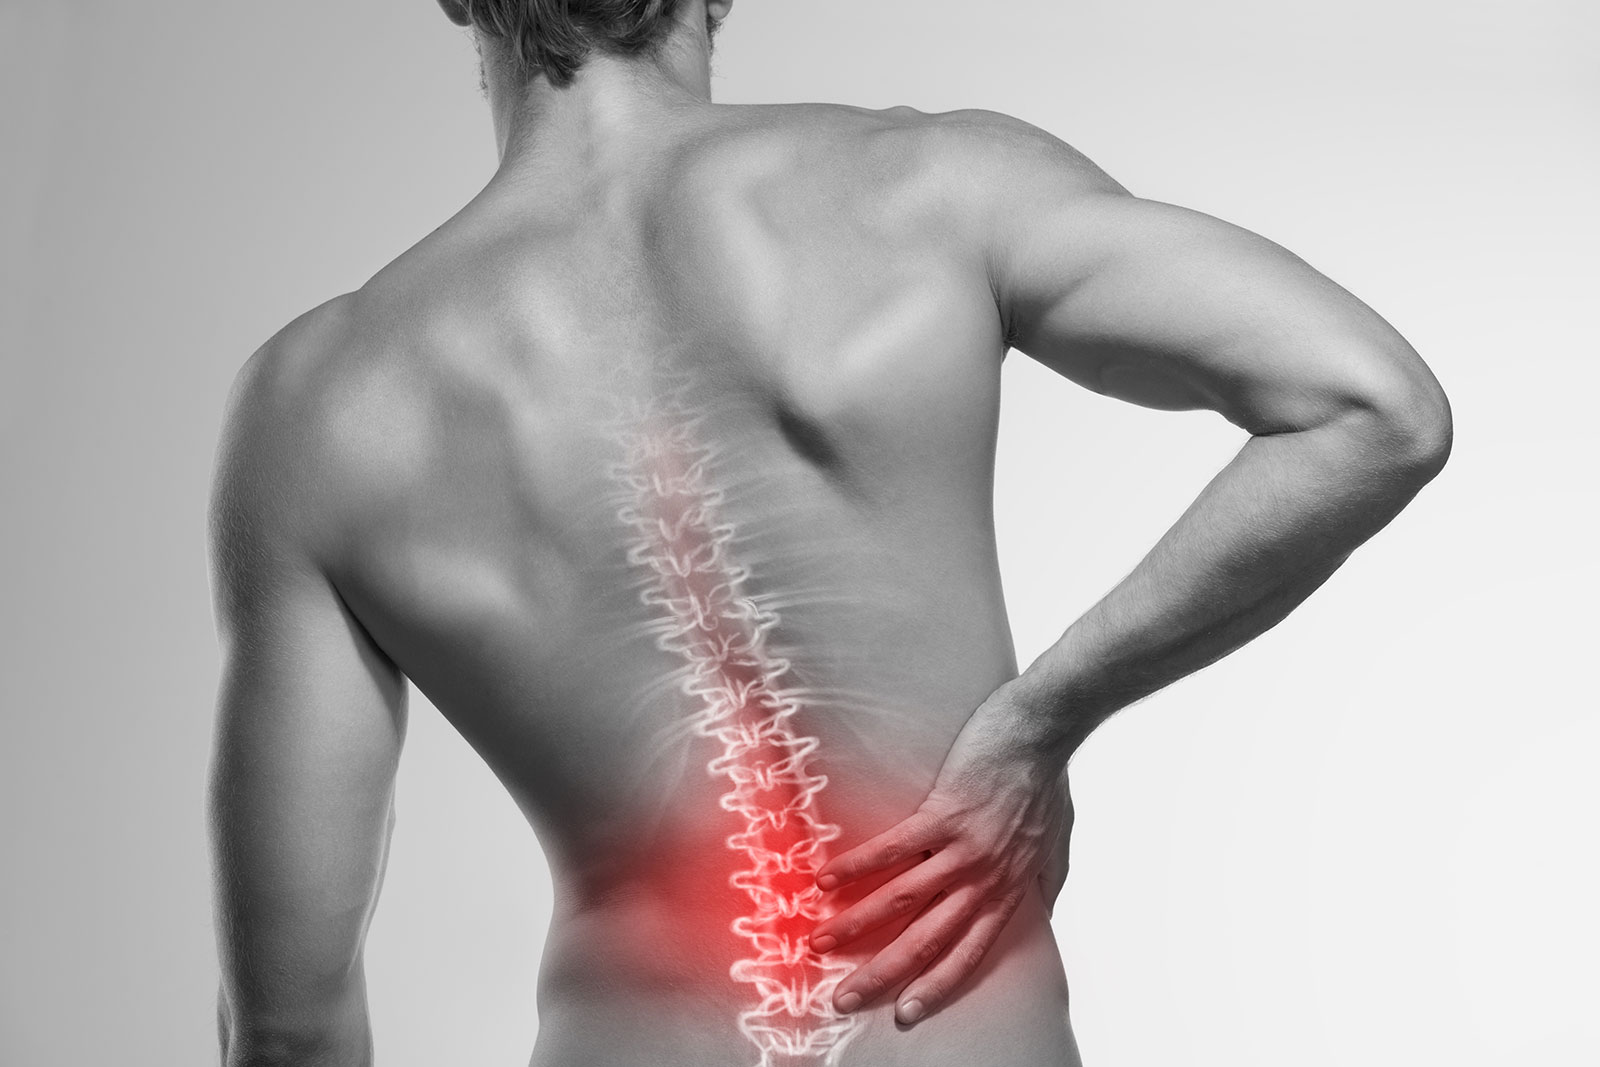 Chronic Back Pain? Here's What It Could Mean